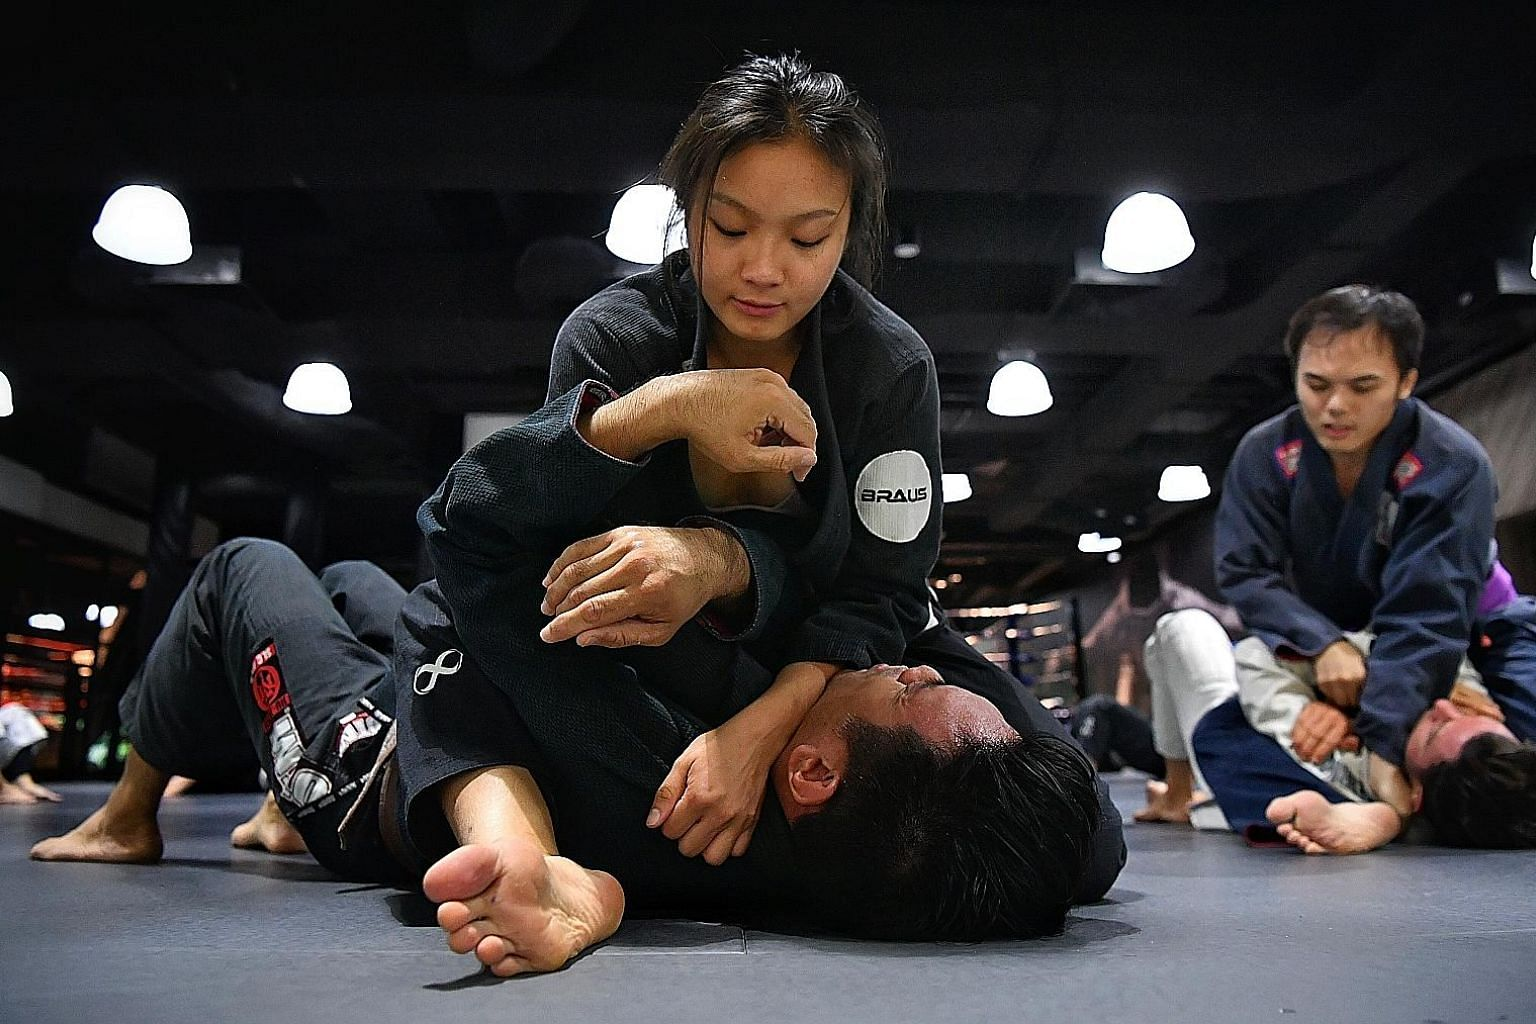 Singapore jiu-jitsu exponent Constance Lien in training in January before the circuit breaker measures were imposed. During the time in isolation, she has been making do with strength and conditioning exercises and training on dummies.